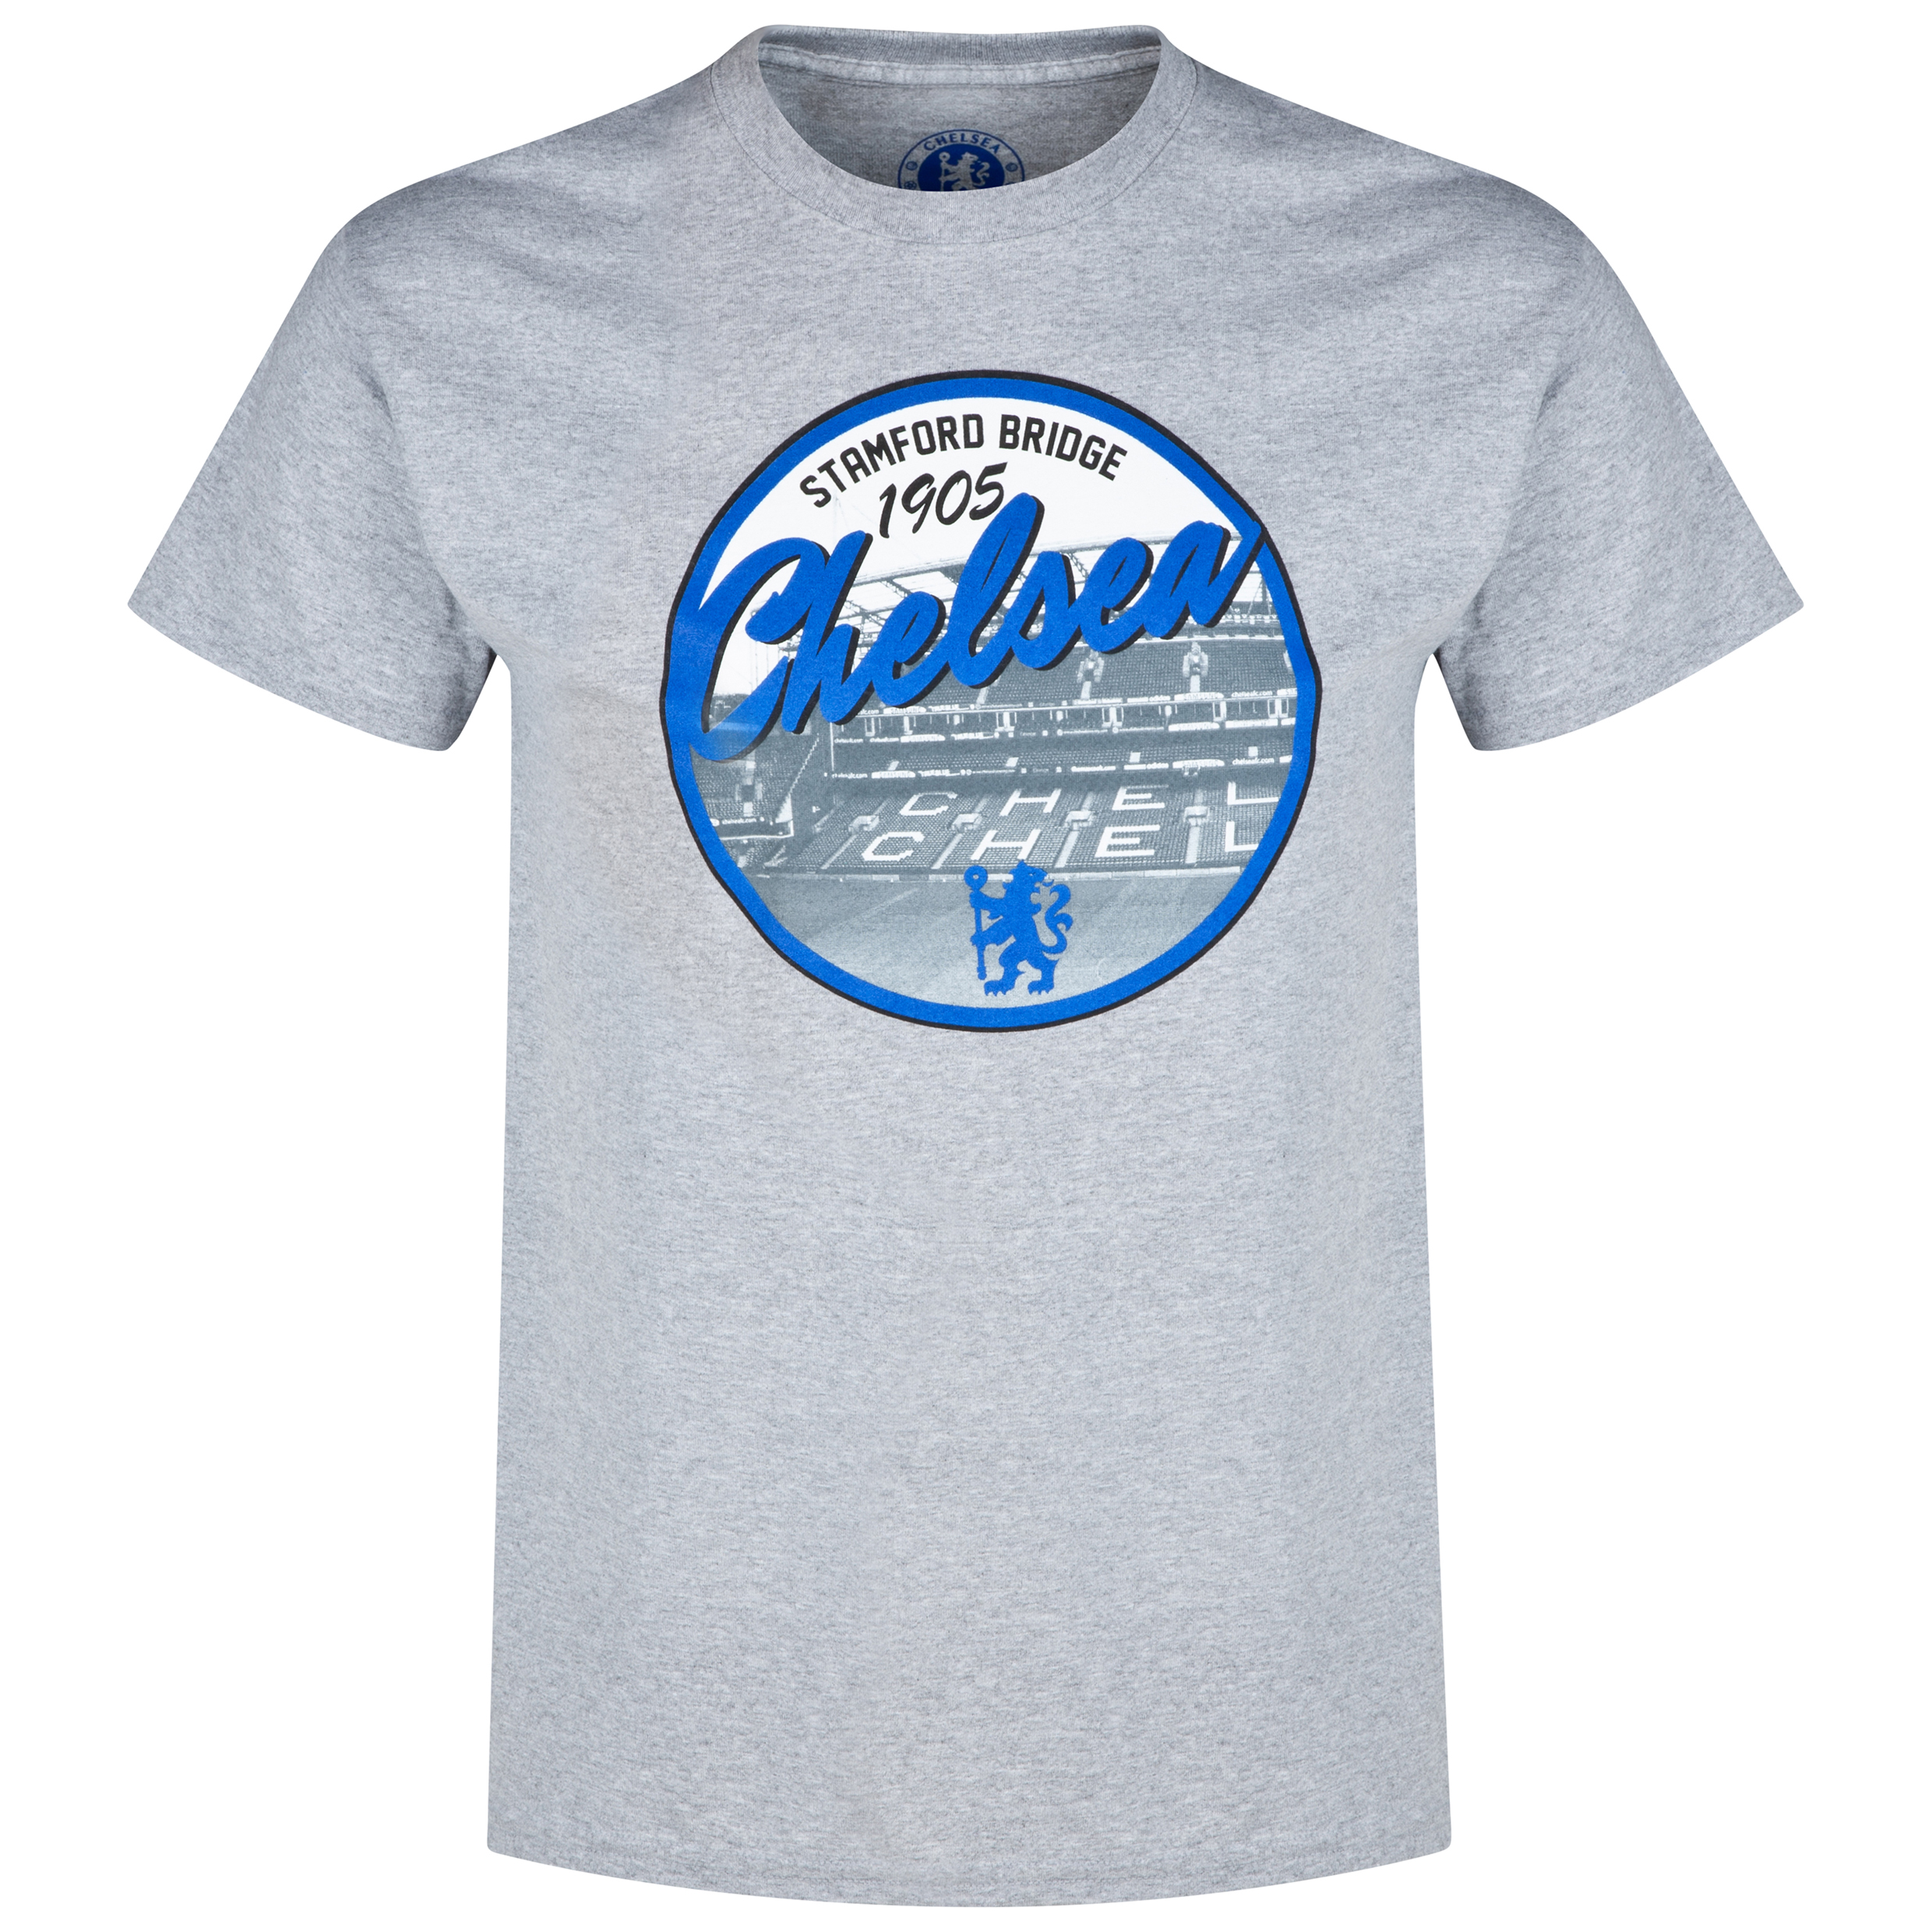 Chelsea Stadium T-Shirt - Sports Grey - Mens